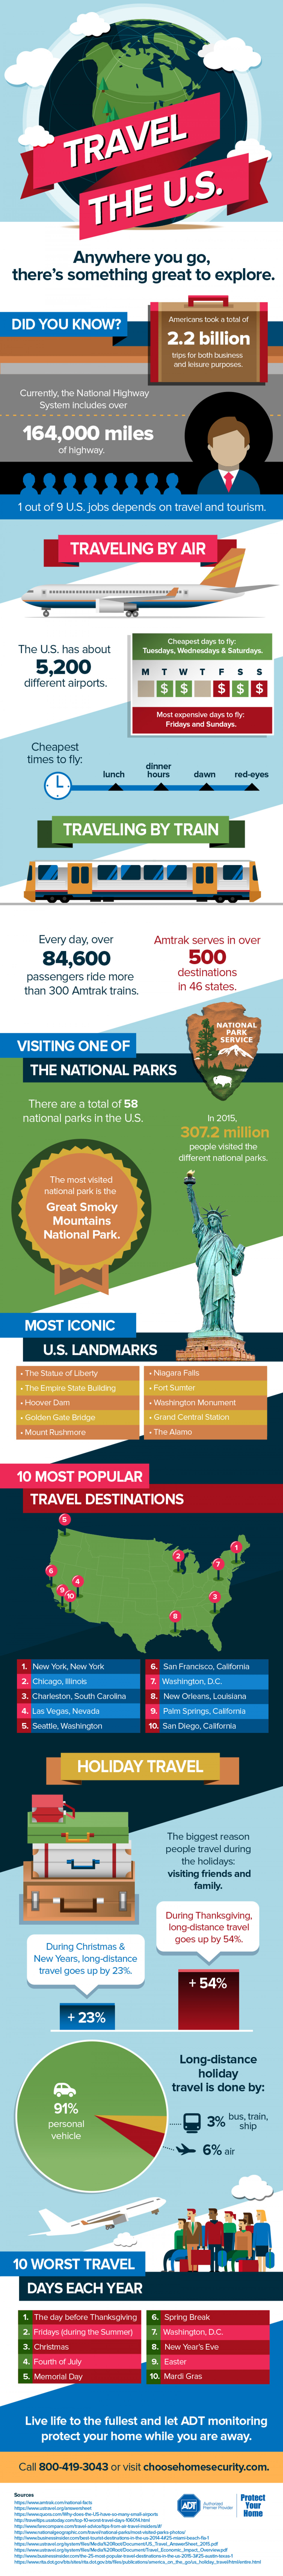 Travel the U.S. Infographic